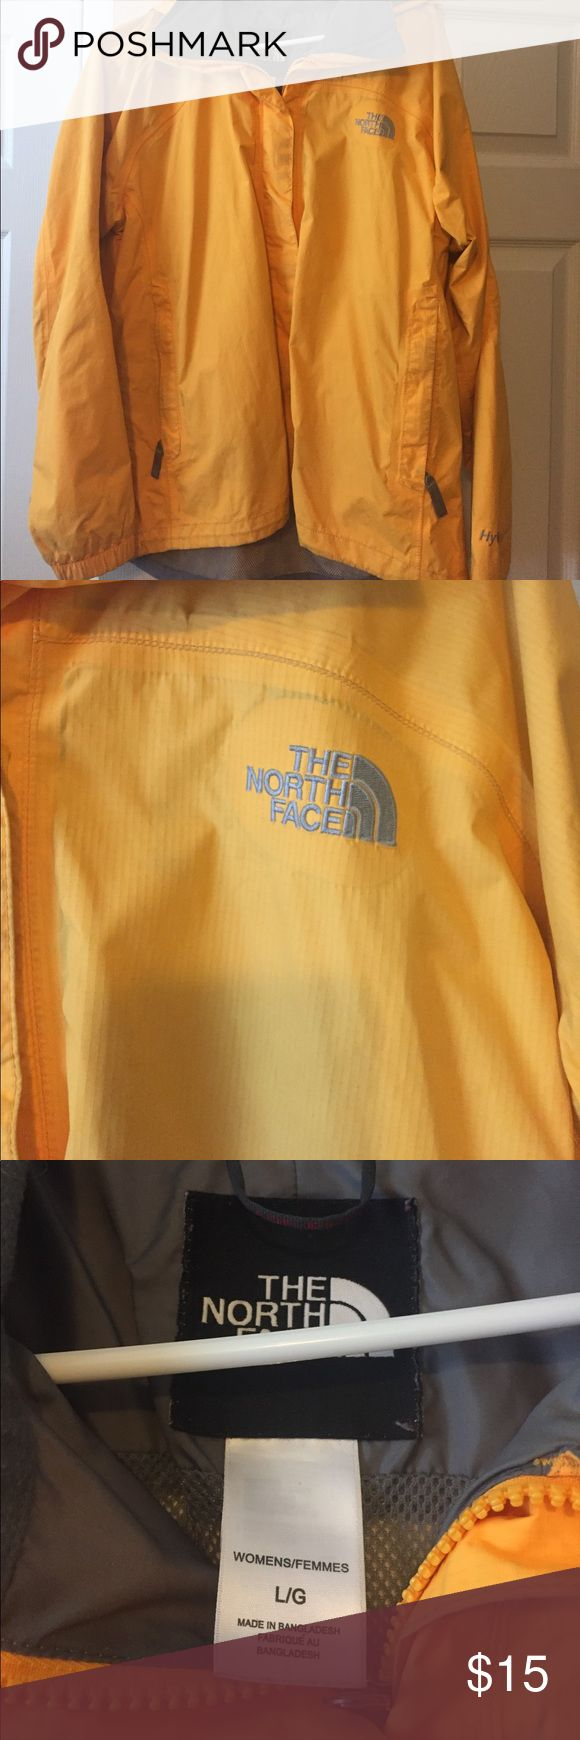 Women's North Face Yellow Rain Coat Wonderful size large women's rain coat for sale. It is on sale for a huge discount since it has been worn and well loved! North Face Jackets & Coats Trench Coats